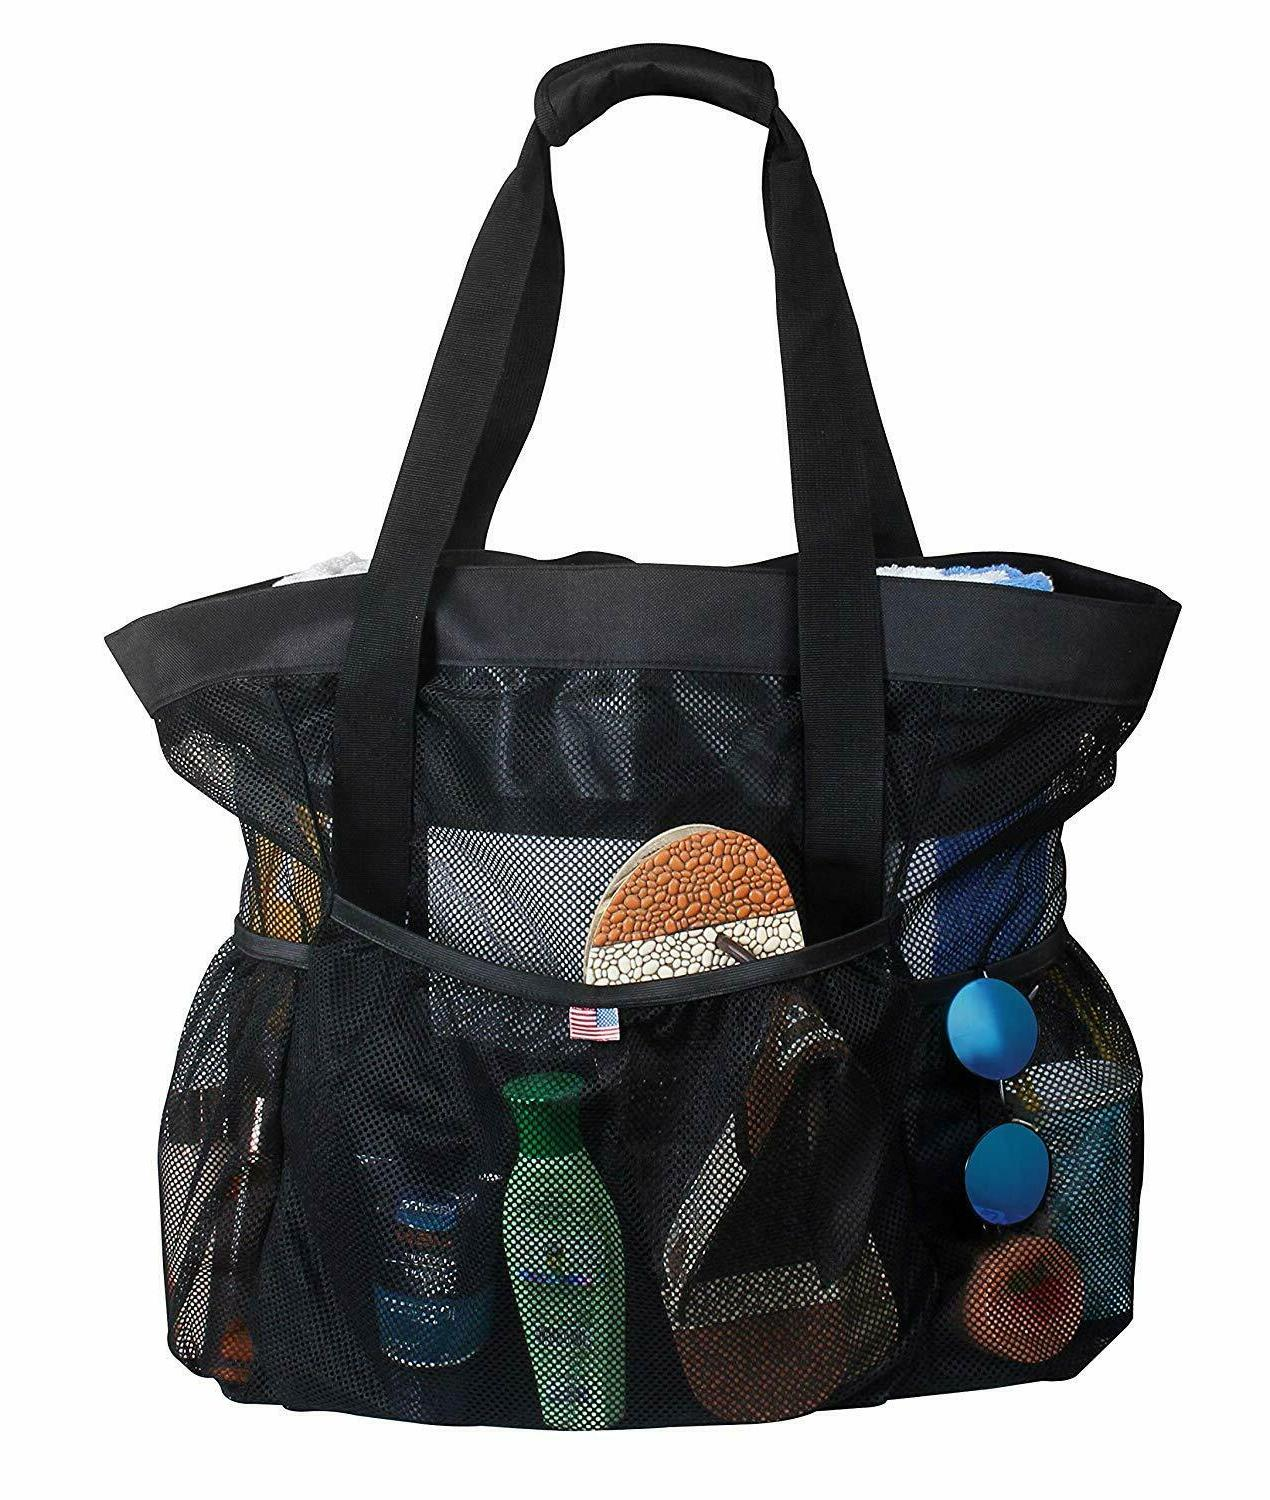 Light Weight Mesh Bag for Picnic, Outdoor